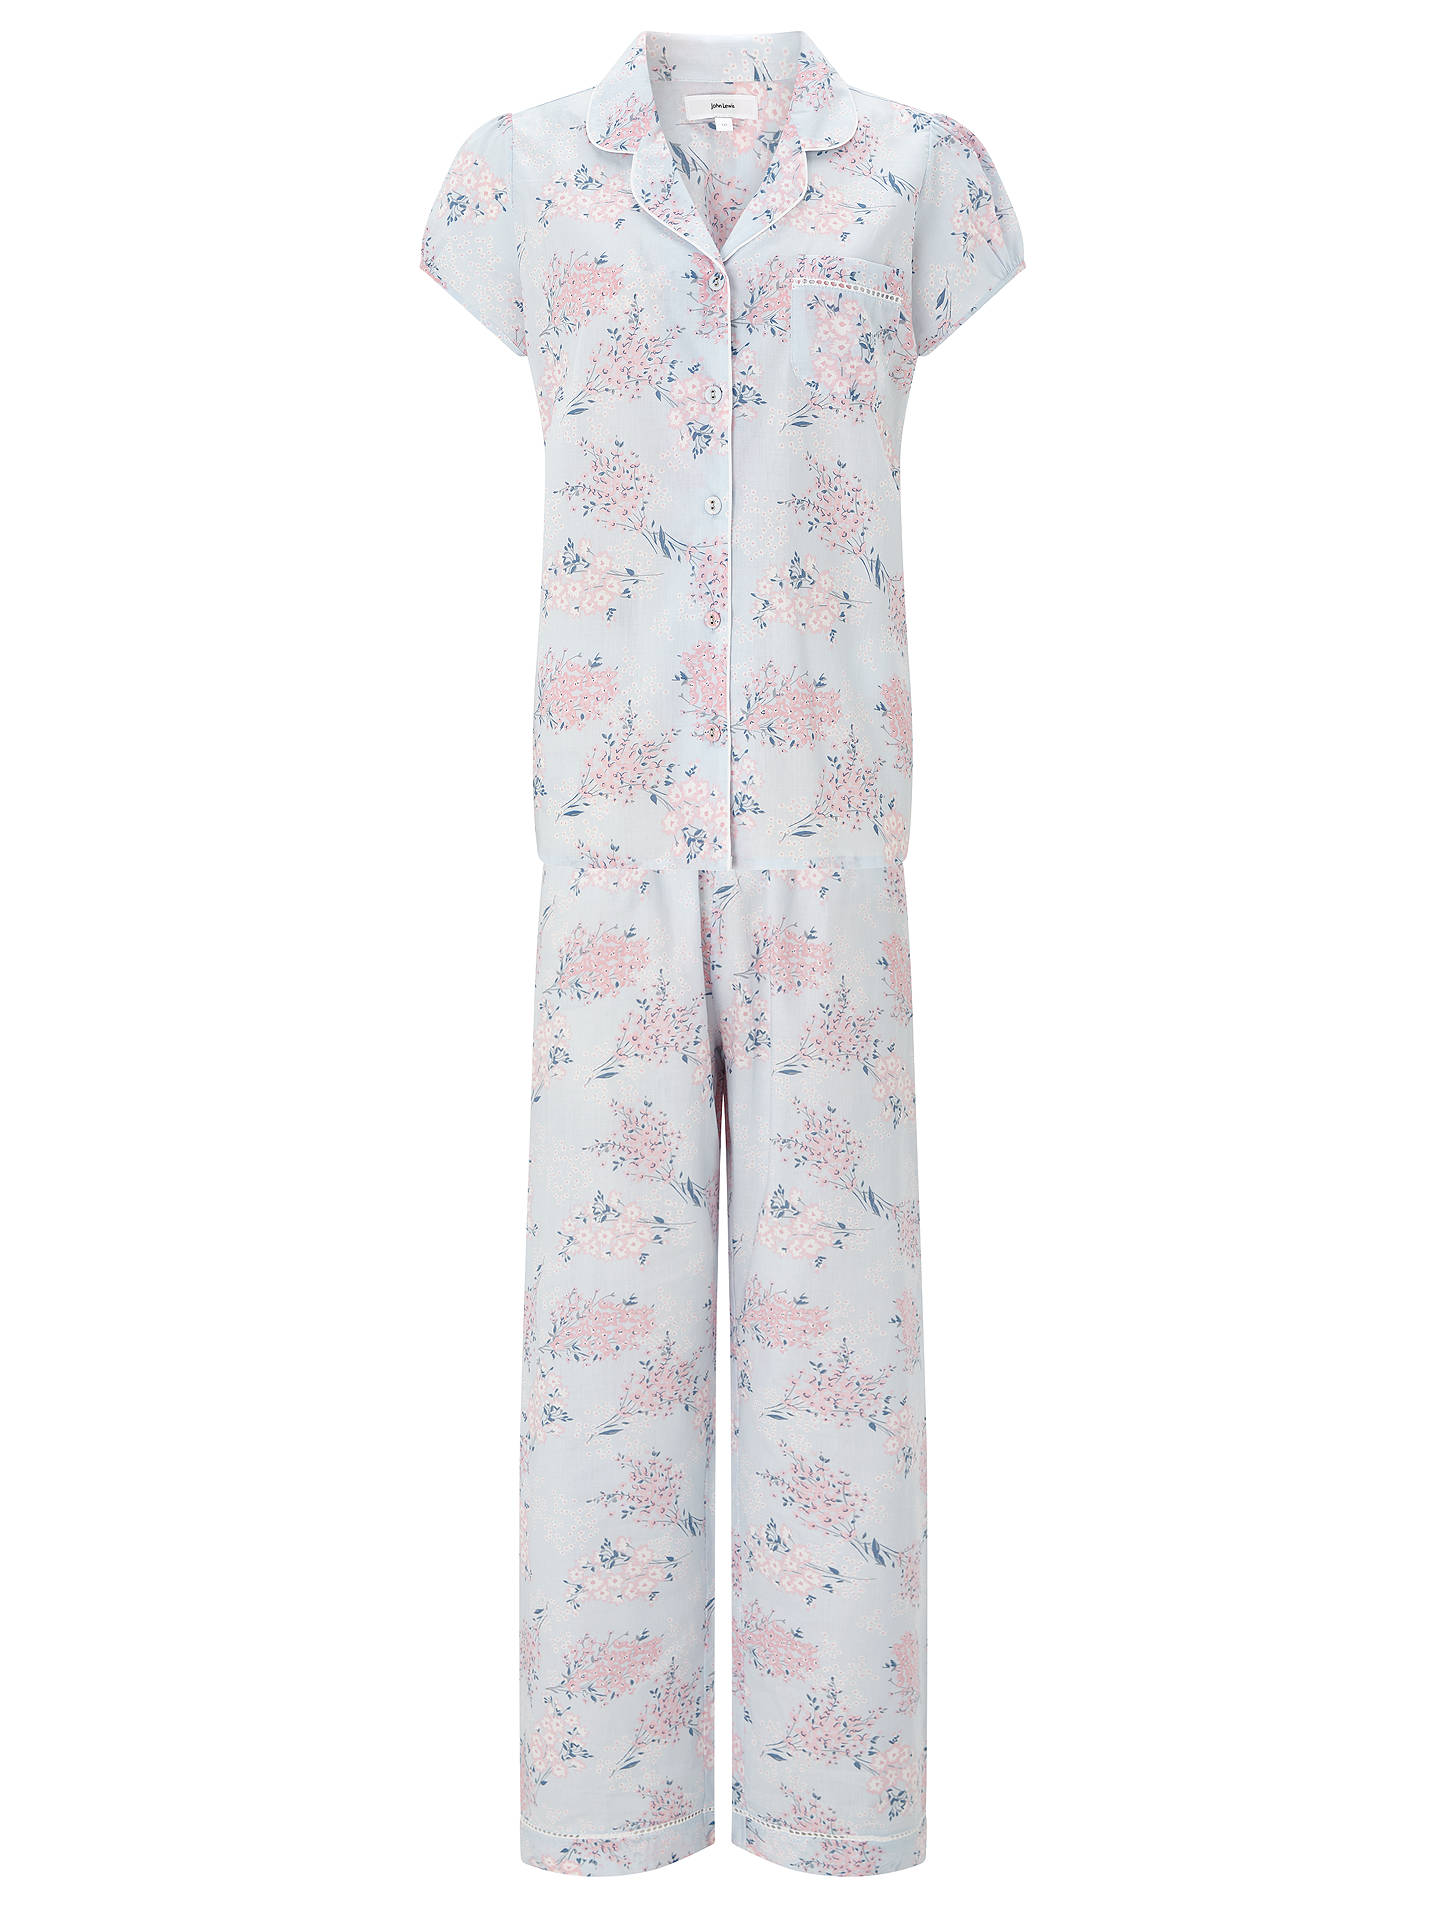 8c84e1b2 Buy John Lewis Angela Floral Print Short Sleeve Pyjama Set, Blue/Pink, 8